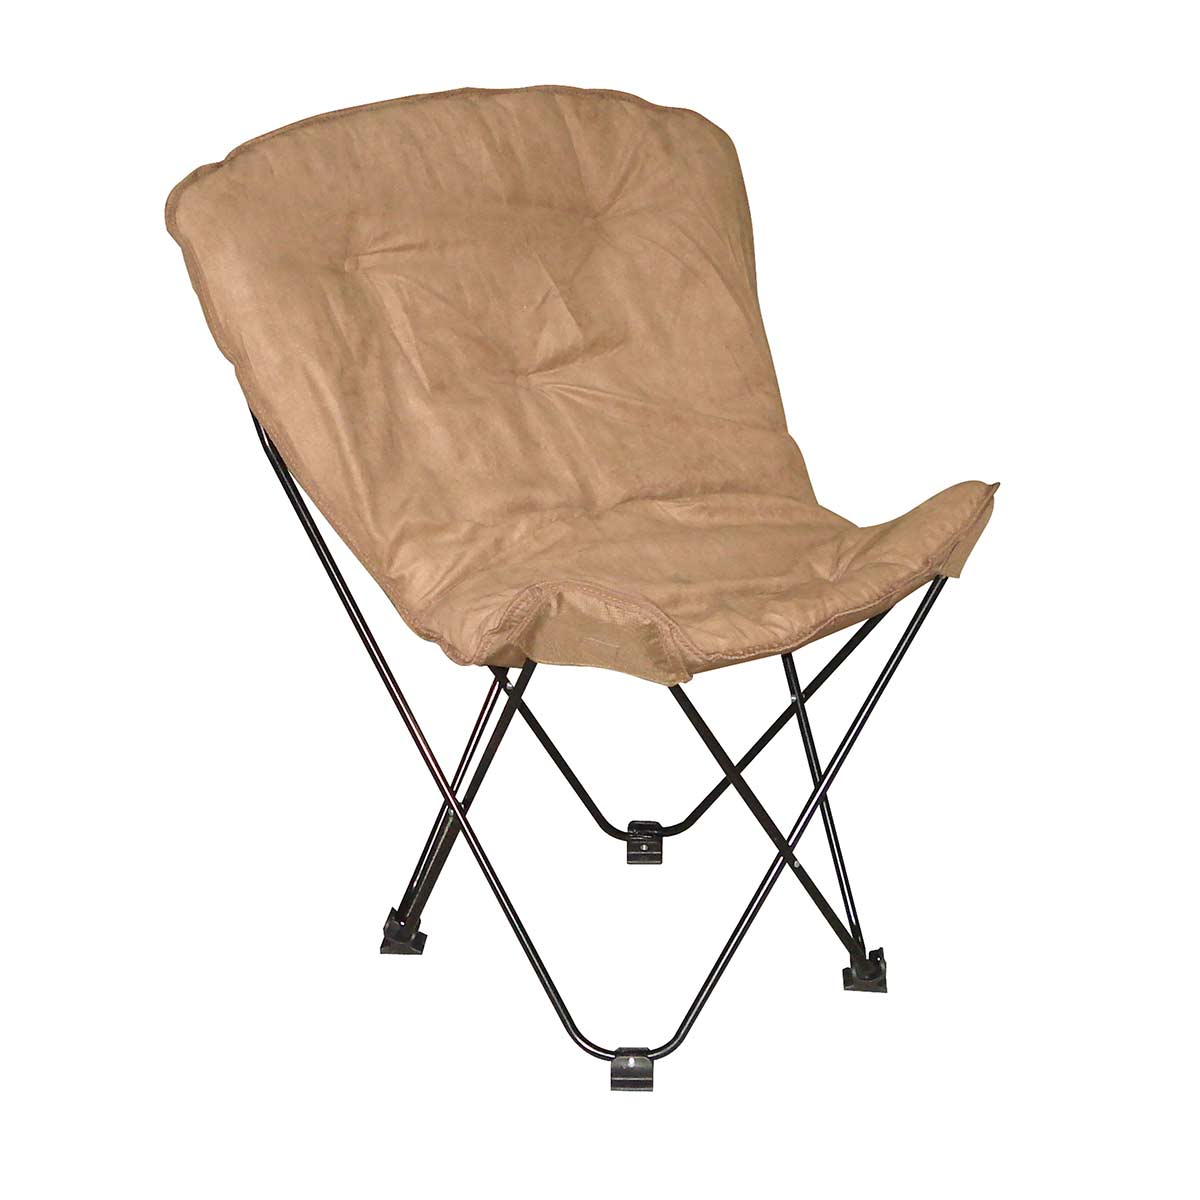 Soft Folding Chairs International Caravan Folding Butterfly Chair Free Shipping